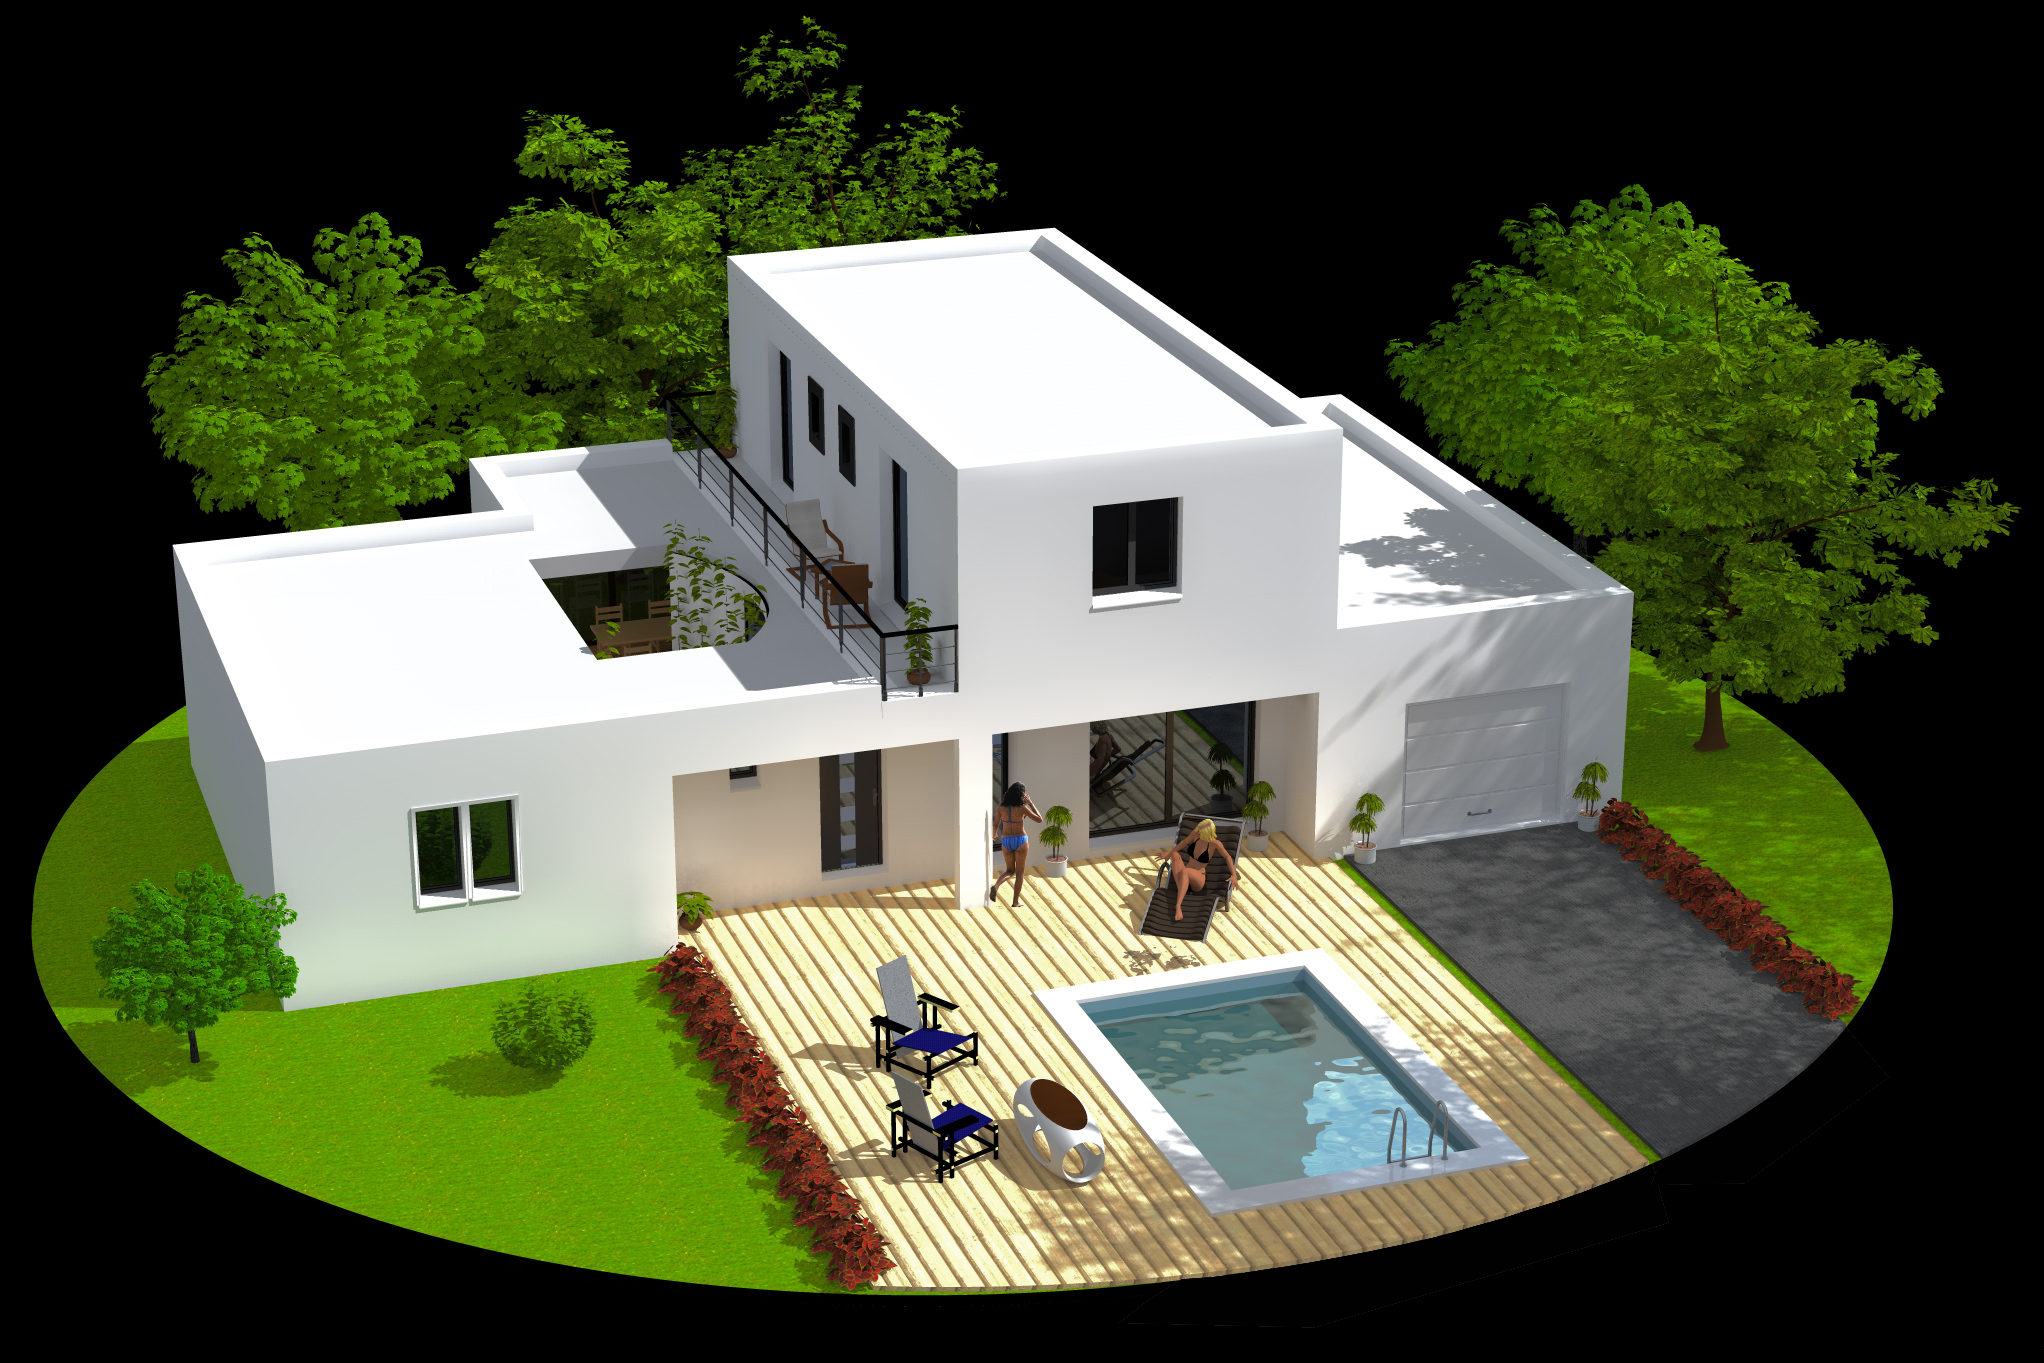 Plan maison en 3d l 39 impression 3d for Creation de maison 3d gratuit